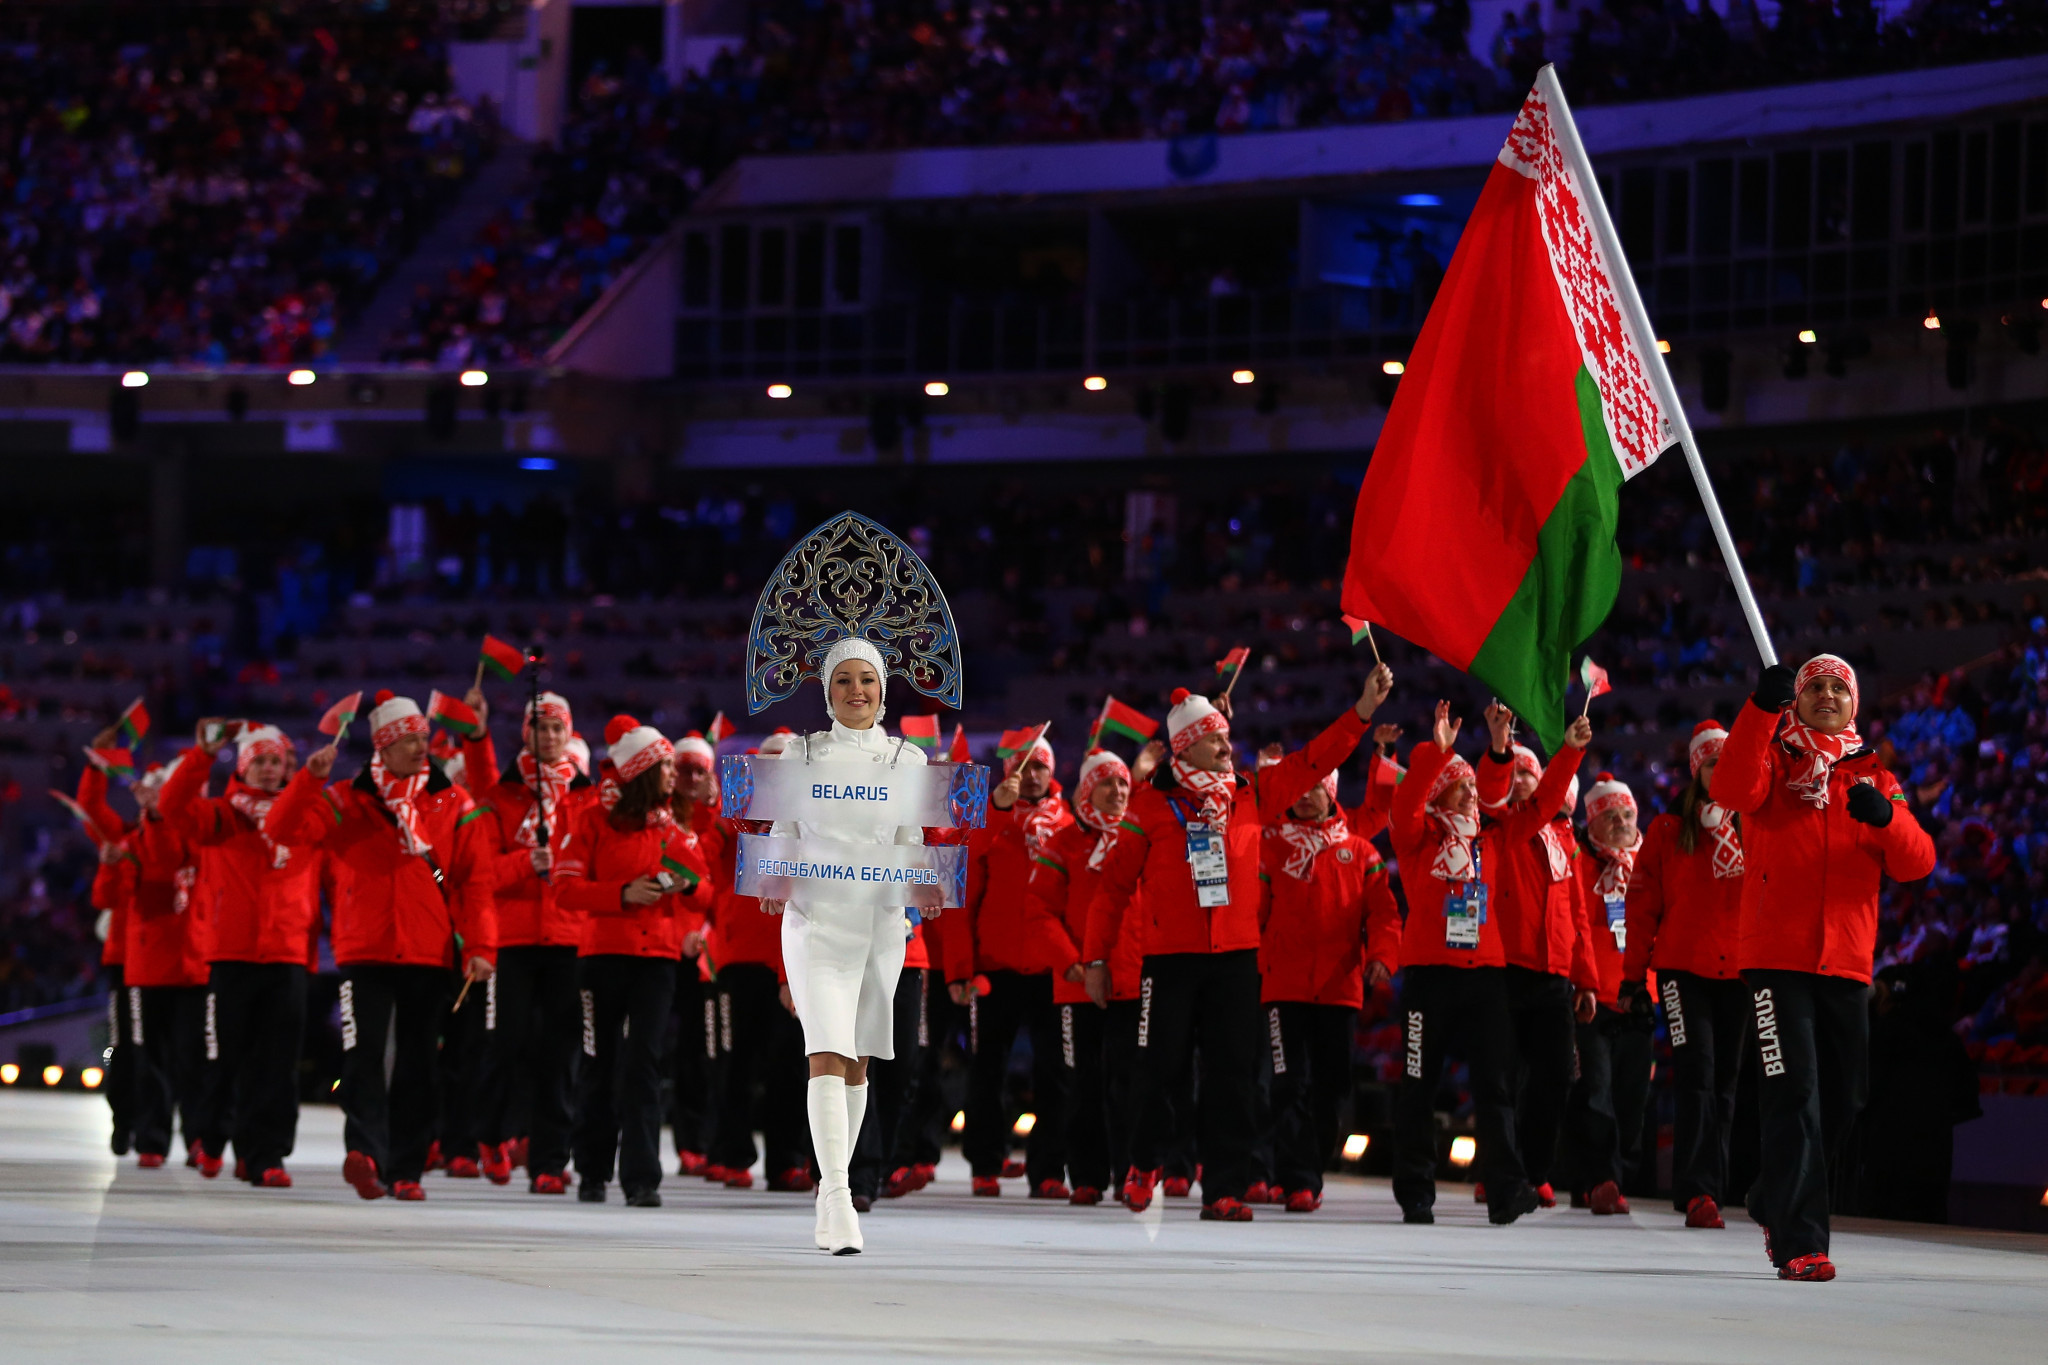 IOC opens formal proceeding against Belarus NOC over alleged Olympic Charter breaches